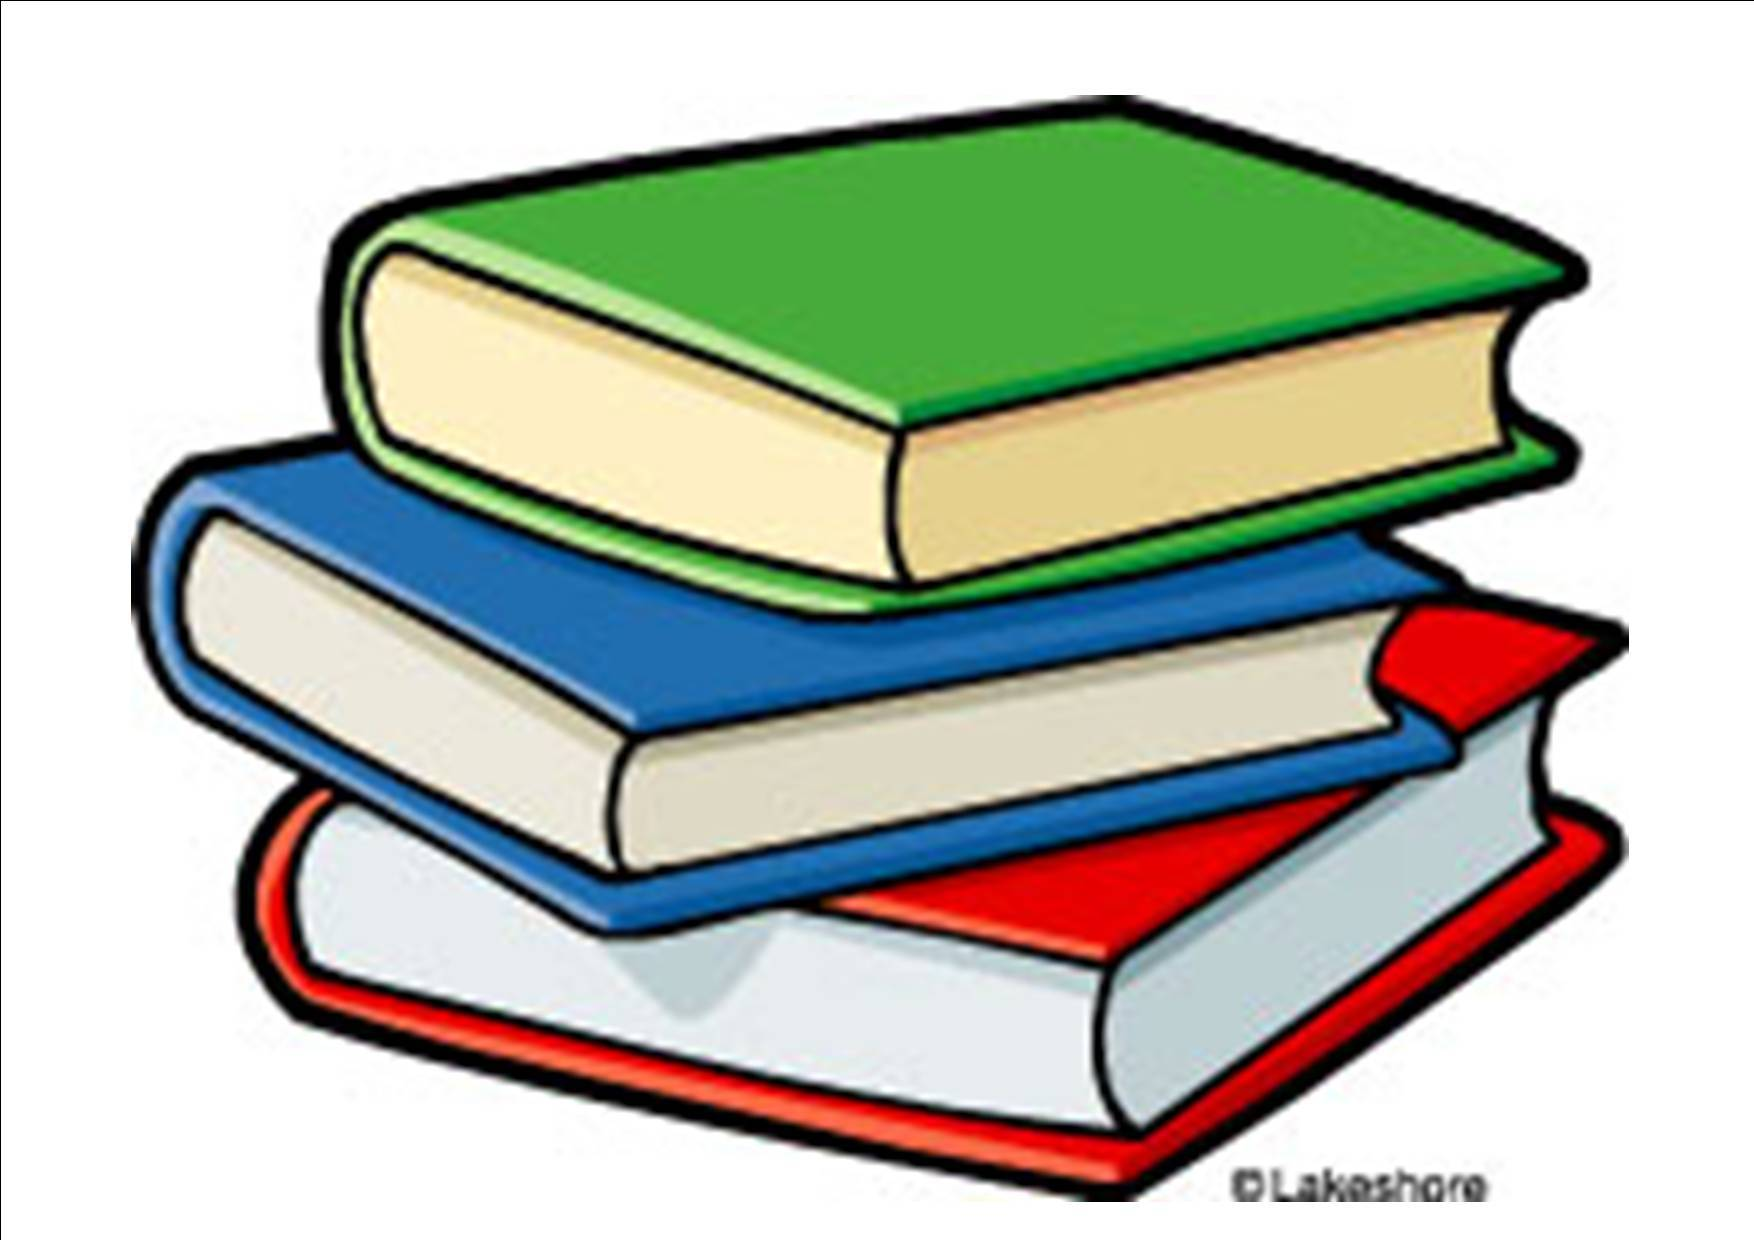 1754x1240 Image Of Books Clipart